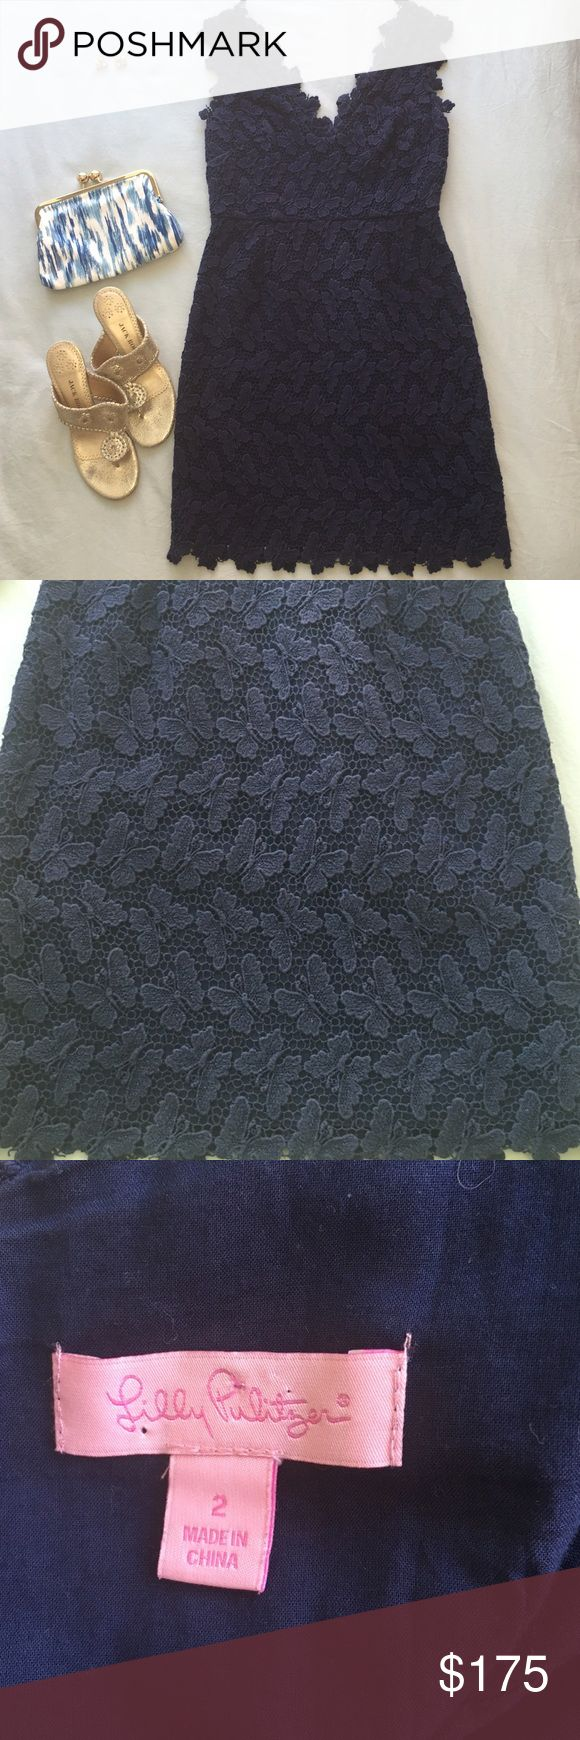 Lilly Pulitzer Papillion lace Reeve dress Gorgeous navy butterfly print dress from Lilly Pulitzer.  Double V front and back with an extremely flattering sheath fit.  Great for a formal event, wedding, or dinner out. Bra keeps in shoulders to keep everything in place.  Previously loved but in very good condition. No trades, no transactions outside posh. Lilly Pulitzer Dresses Mini